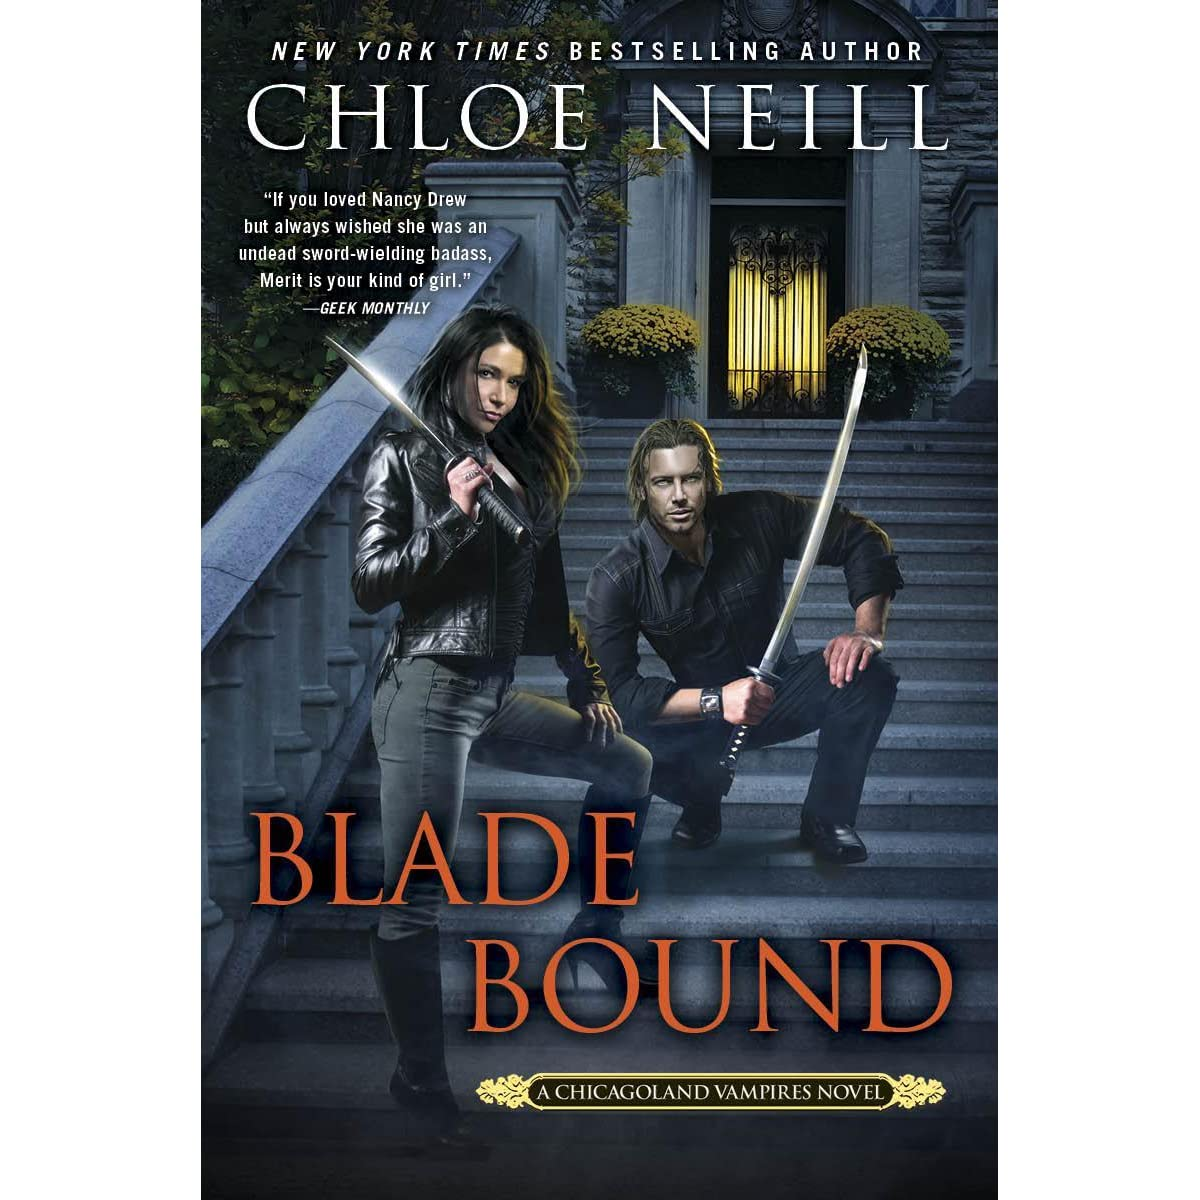 Image result for blade bound by chloe neill